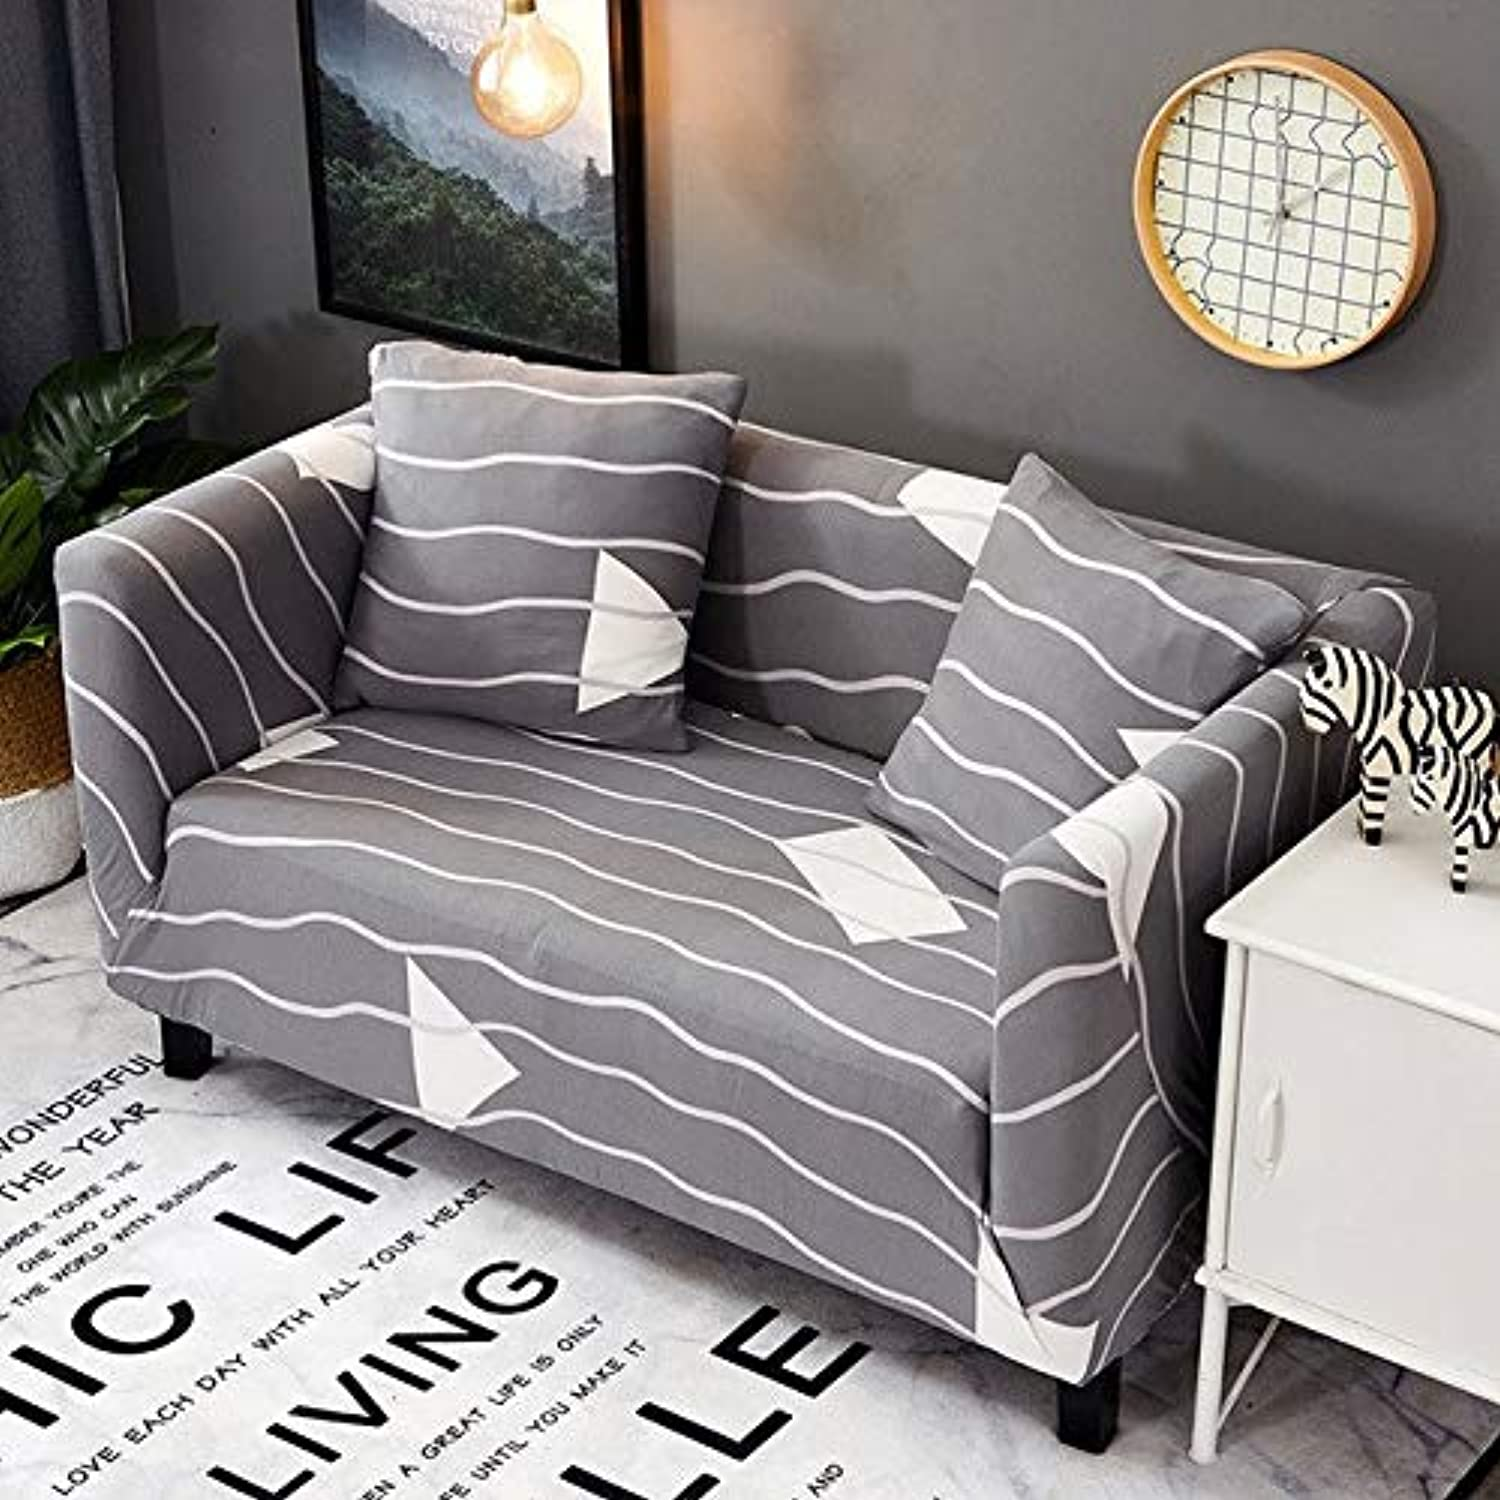 Farmerly Flexible Funiture Covers Fashion Printed Home Office Decorative Sofa Cover Corner Elastic Full Sofa Cover Couch Cover   3, Three seat